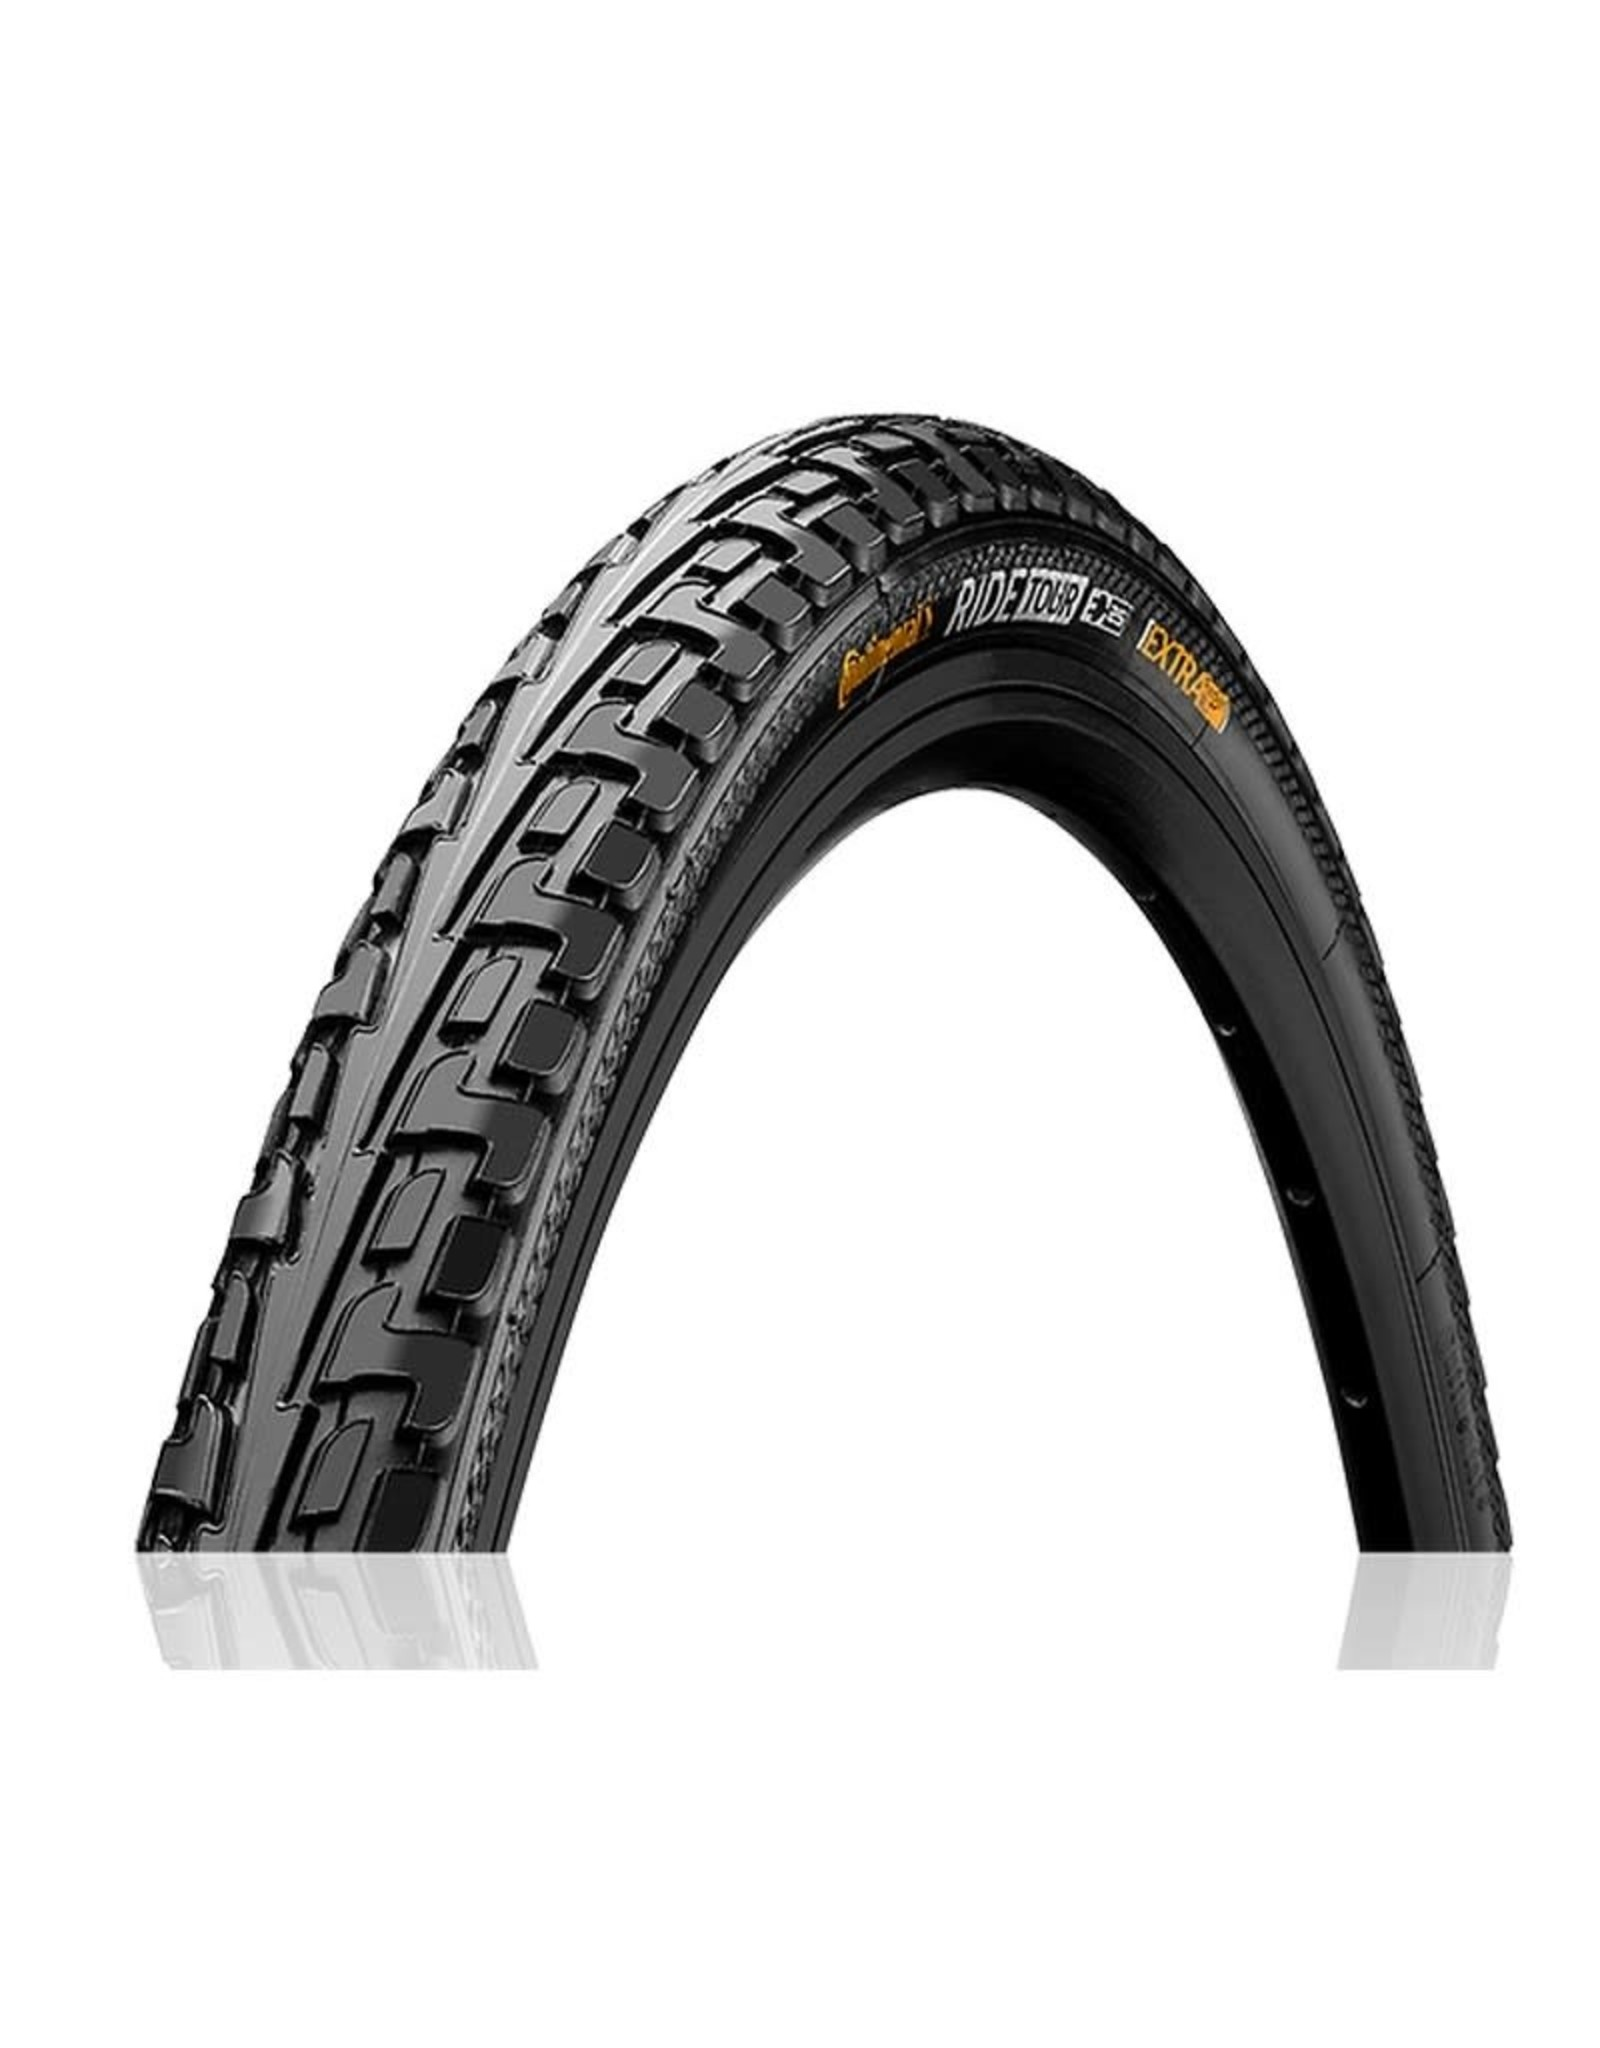 Continental Tire Continental Tour Ride 700x32 Black